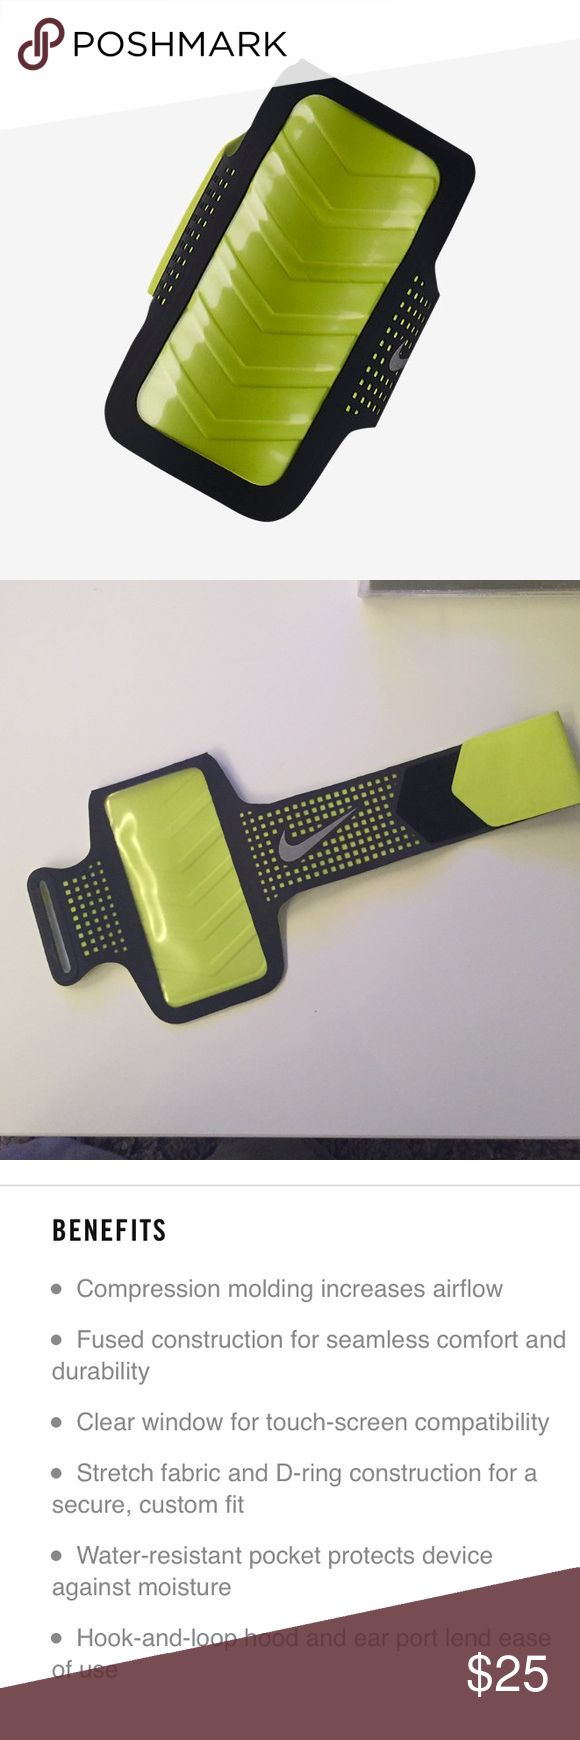 Nike✔️ IPhone 6 Armband Nike IPhone 6 Armband gray and neon lime. Has clear face for easy view, only used once! Plastic does have some marks that rub off from another item. Nike Accessories Phone Cases